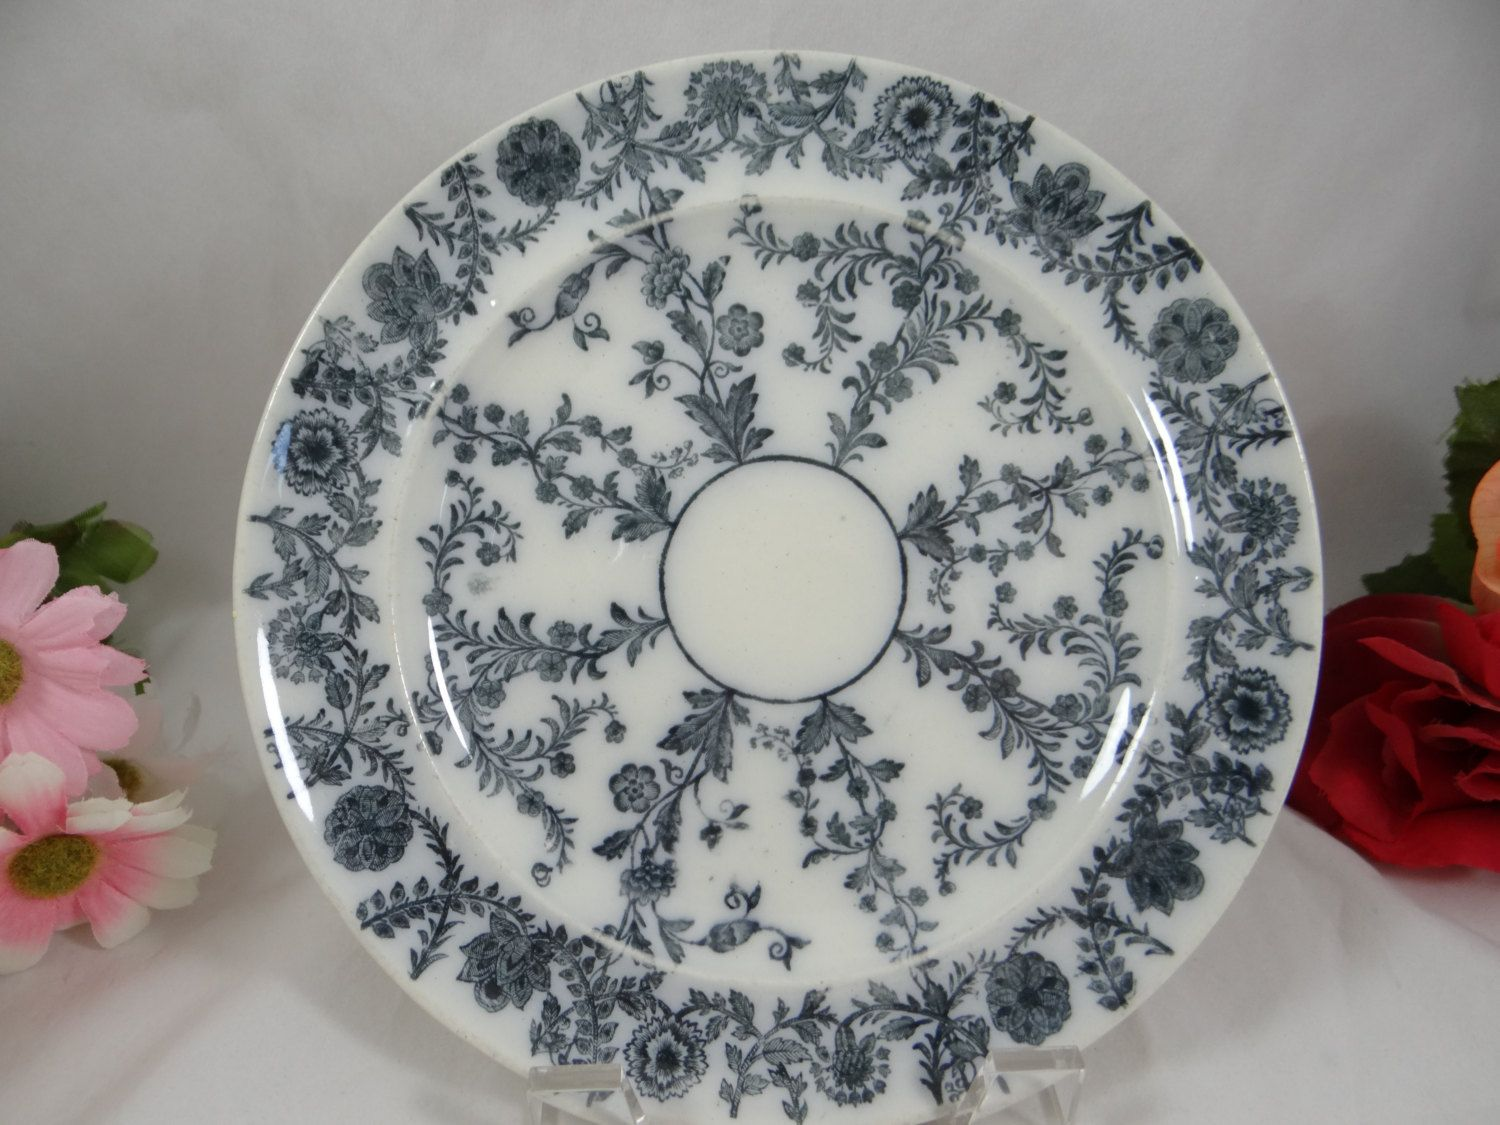 1850-67 Antique Copeland Spode English Bone China u2013  Delphi Grayu0027 plate & 1850-67 Antique Copeland Spode English Bone China u2013